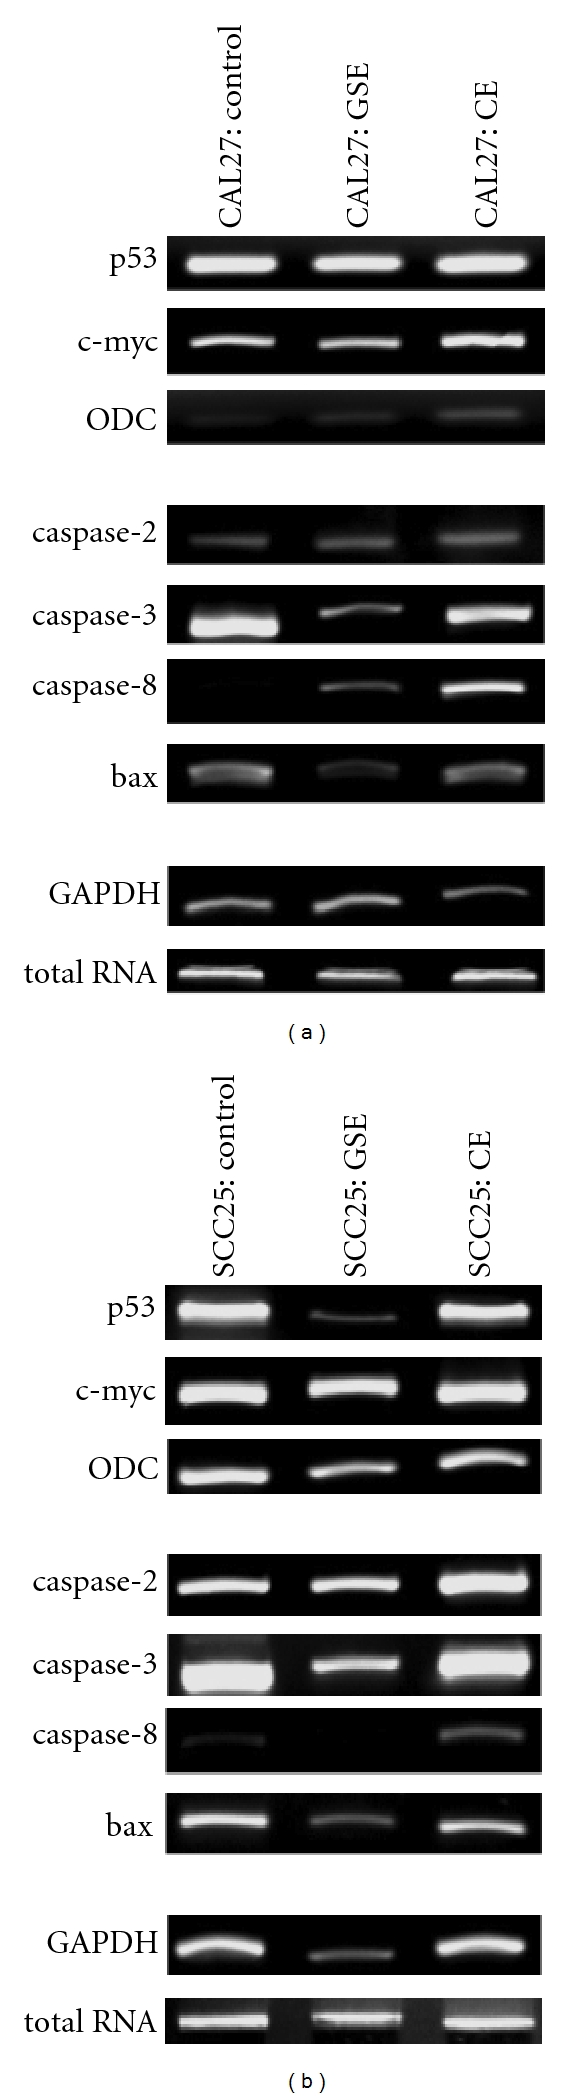 Total RNA and mRNA analysis. RT-PCR was performed on total RNA extracted from CAL27 (a) and SCC25 (b) cells at 24 h after CE or GSE administration; no significant changes were detected at 4 h (data not shown). Relative endpoint (RE) RT-PCR revealed that CE and GSE treatment increased expression of apoptosis-related mRNA (caspase-2, caspase-8) in both cell lines, which is first detectable at 24 h. CE significantly enhanced CAL27 expression of cell-cycle genes (p53, c-myc, ODC), while GSE reduced SCC25 expression of these same targets at this time point.